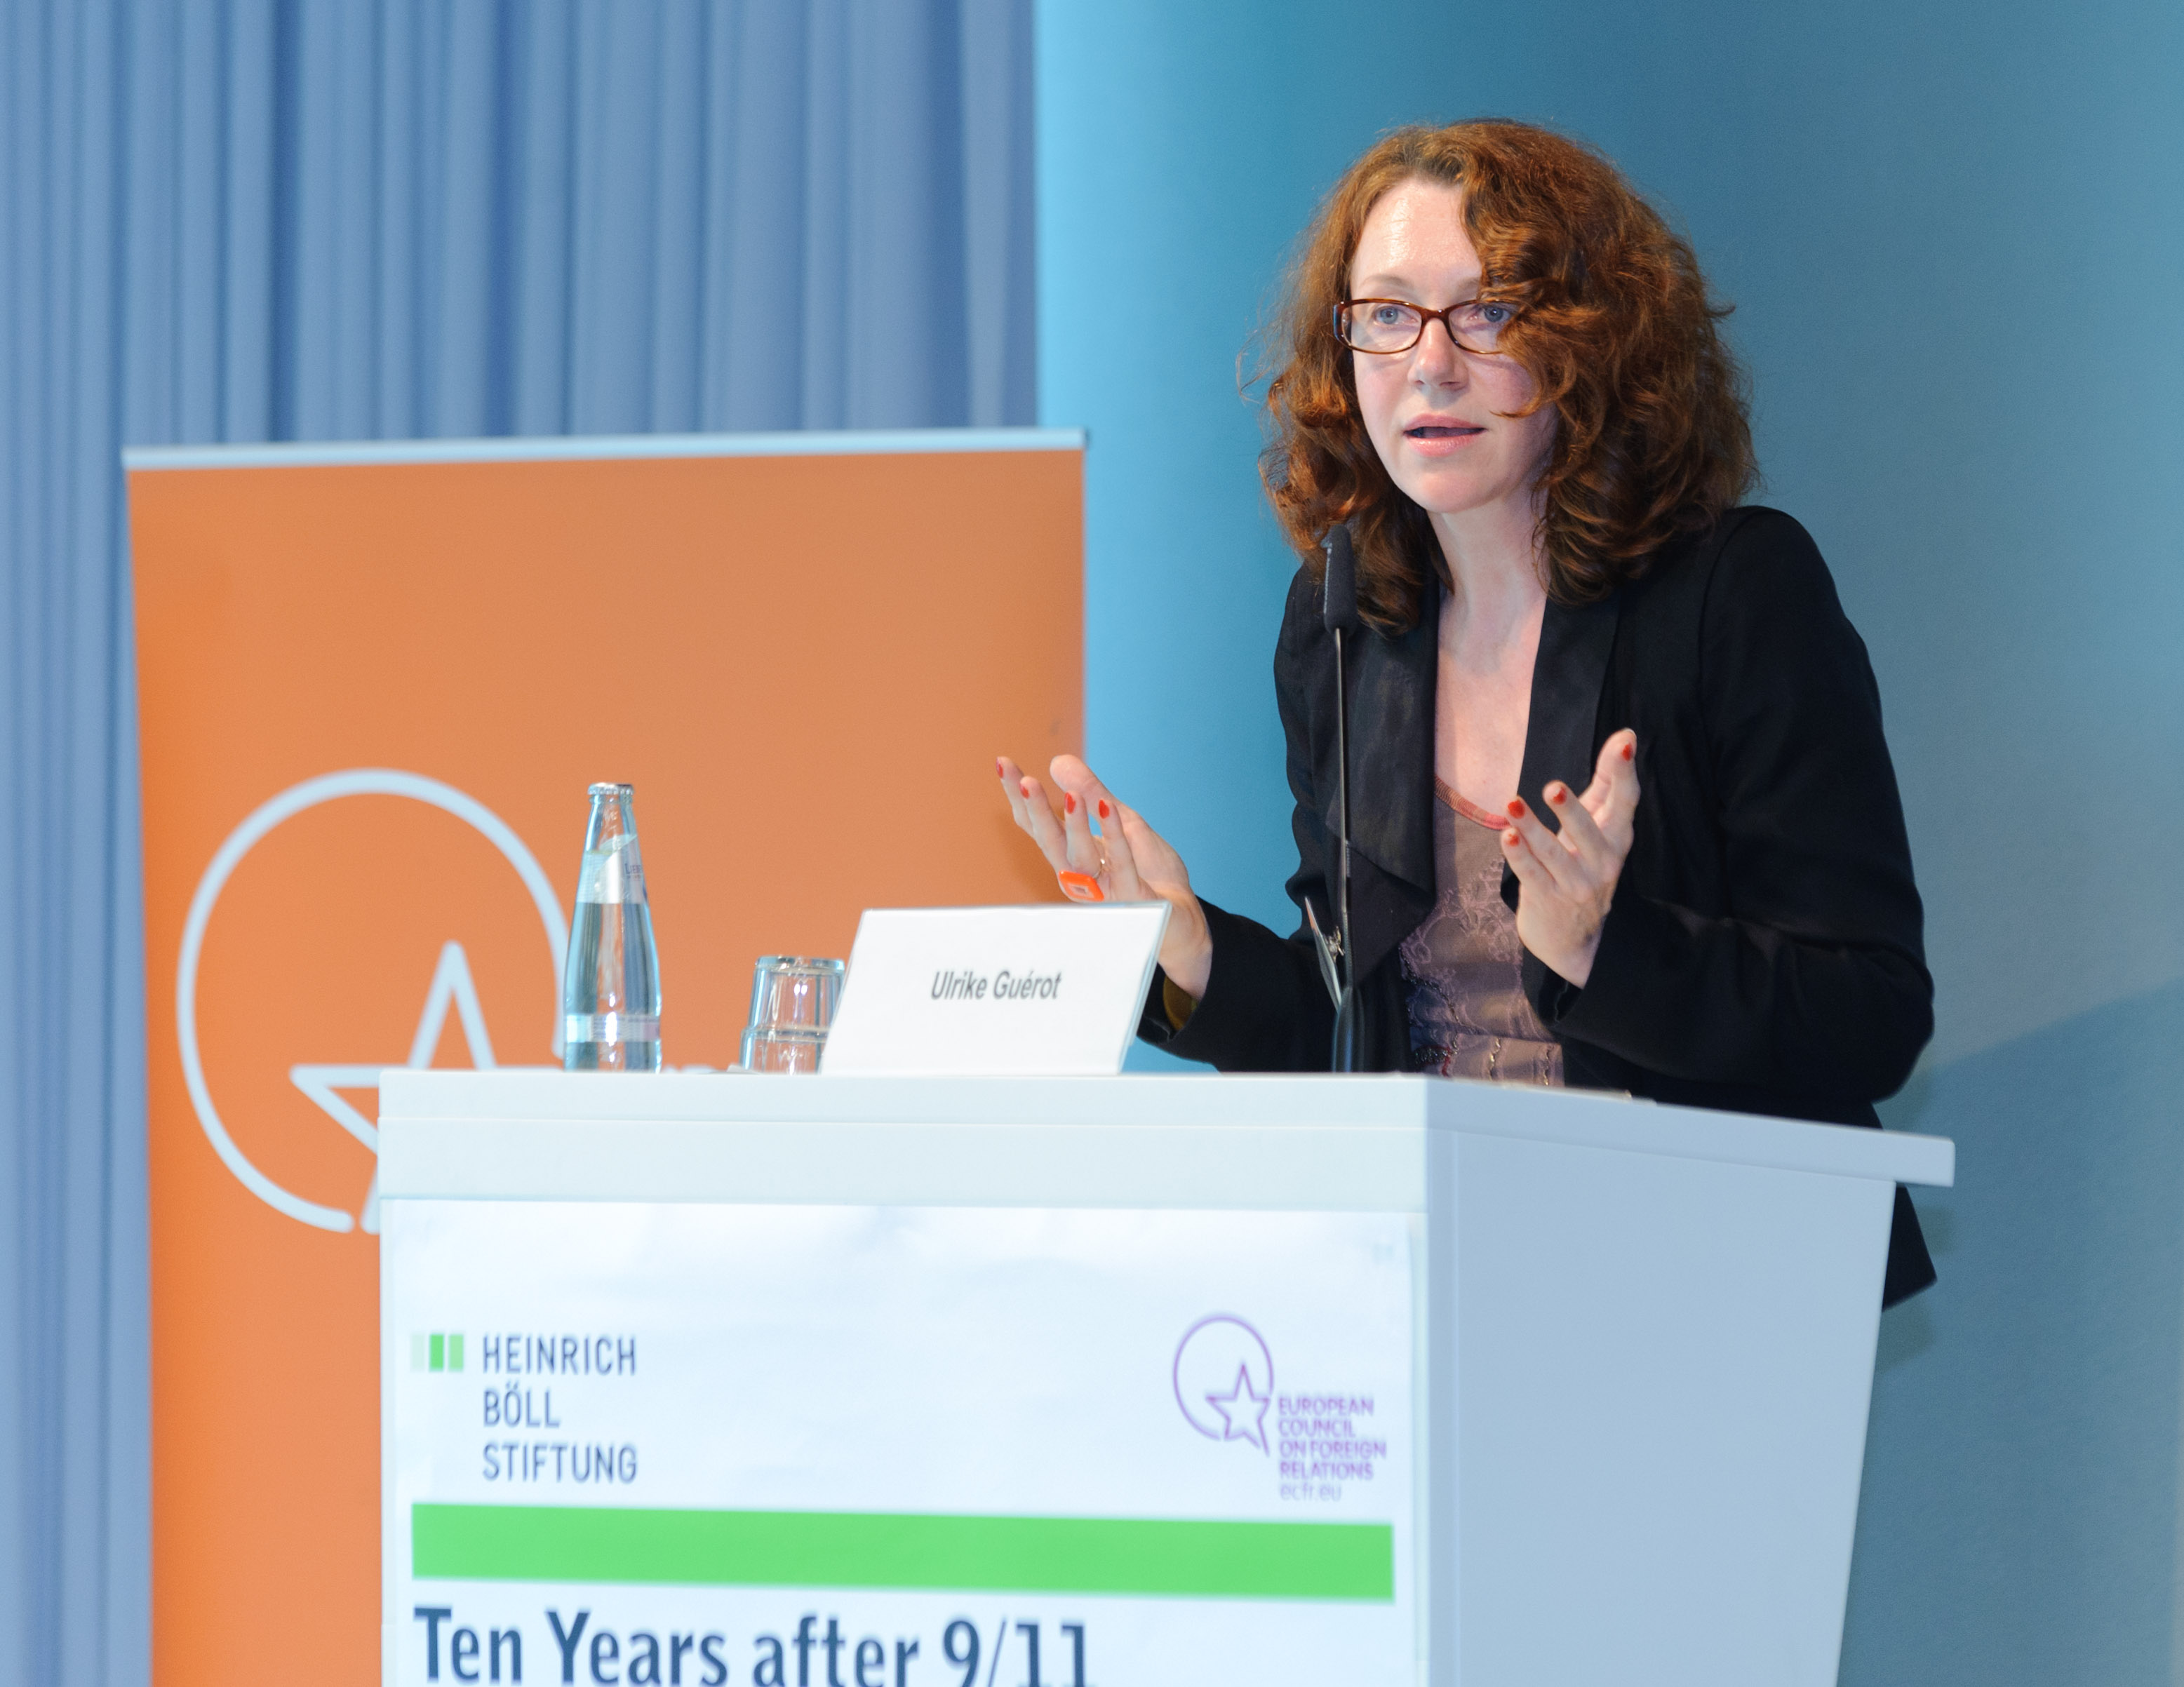 Ulrike Guérot at the Heinrich-Böll-Stiftung in 2011